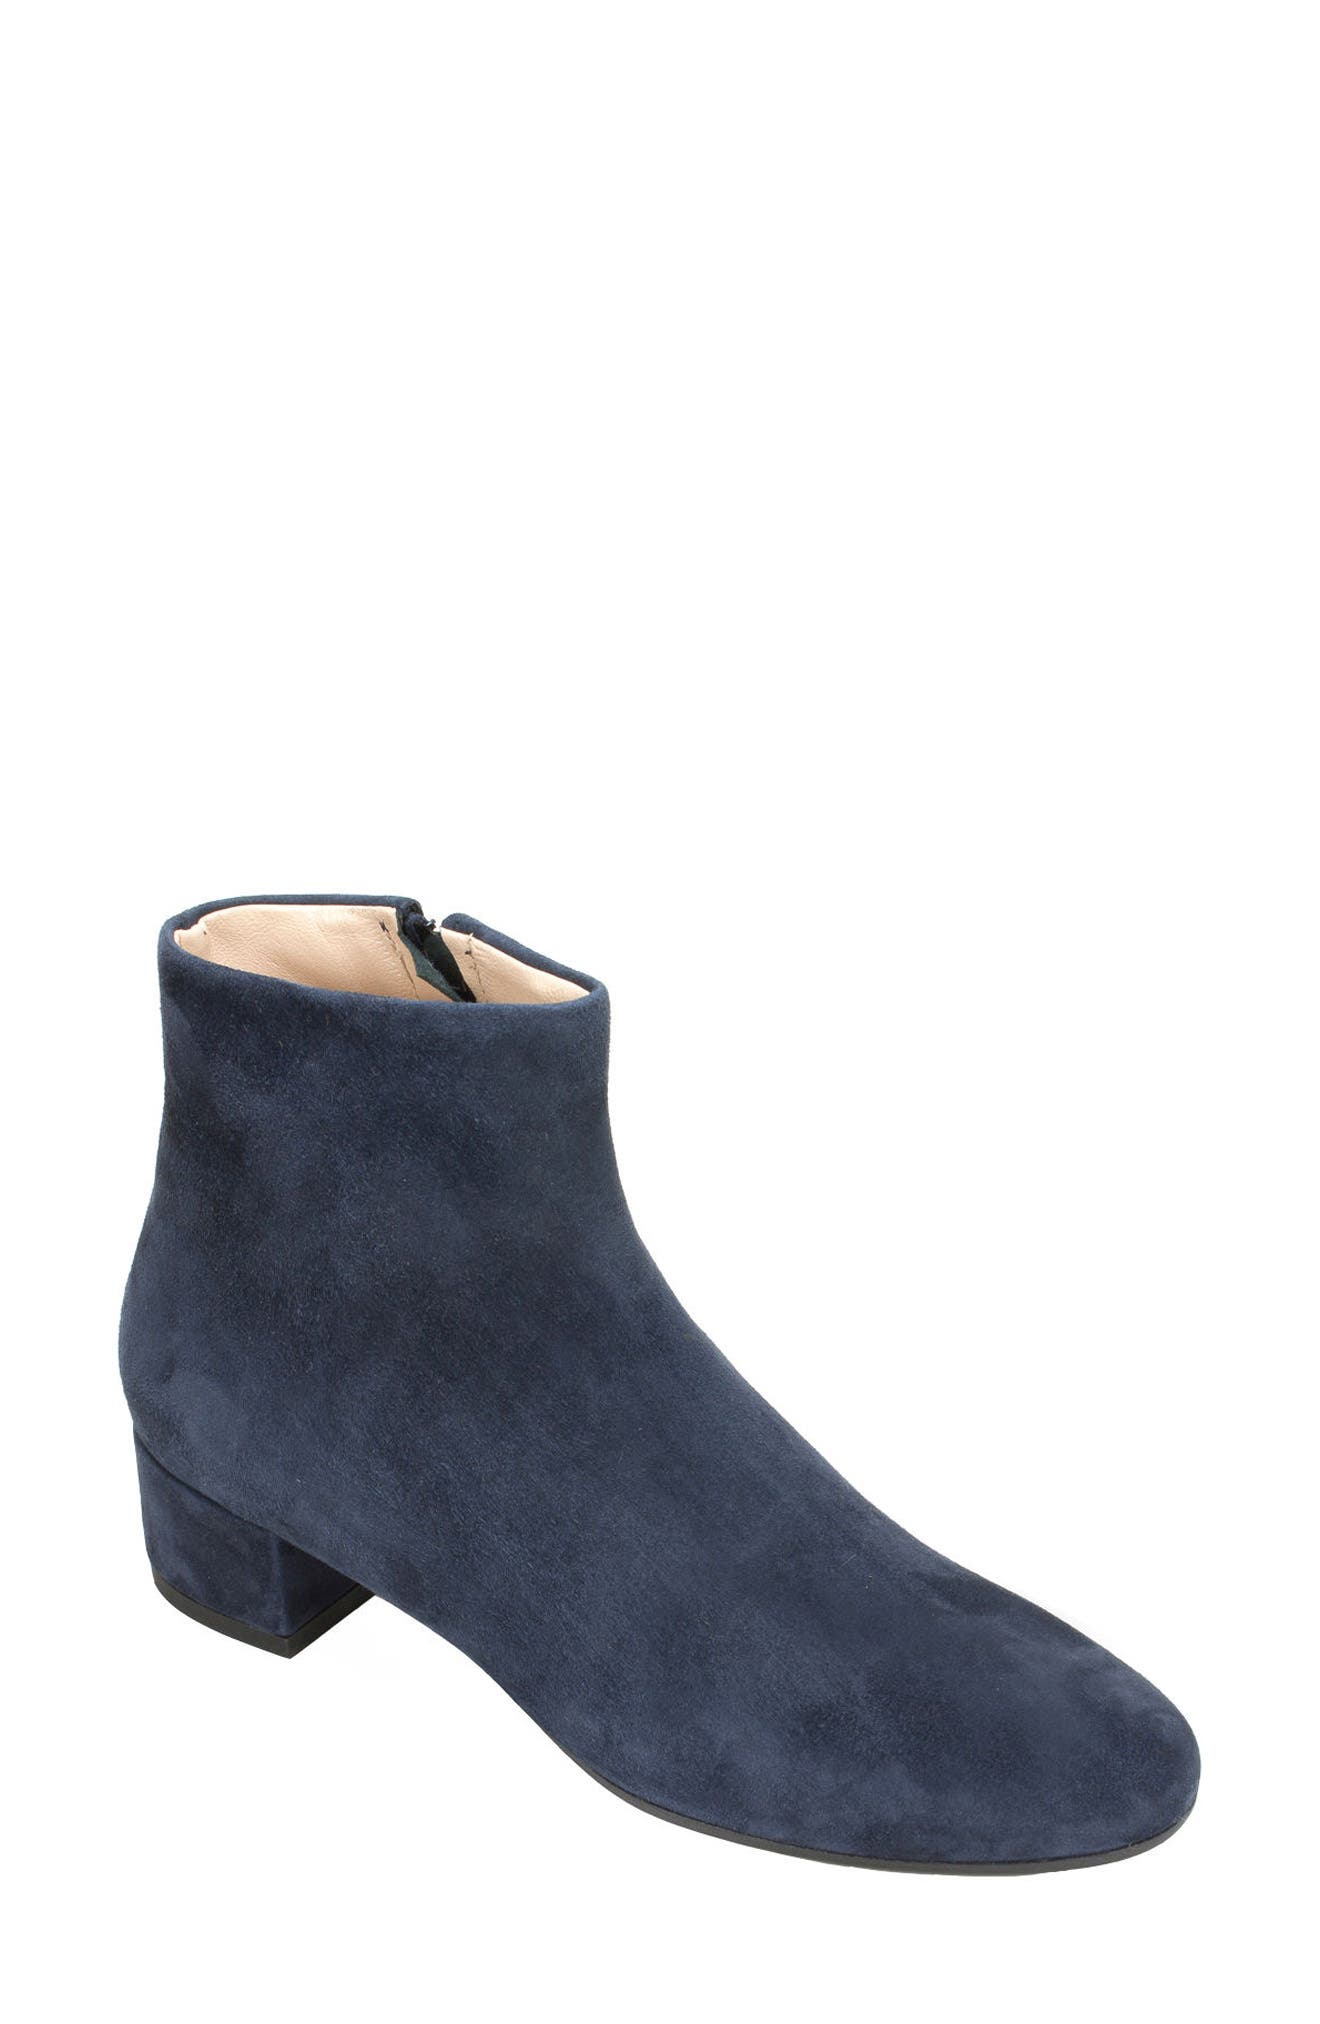 Summit Jordie Block Heel Bootie (Women)